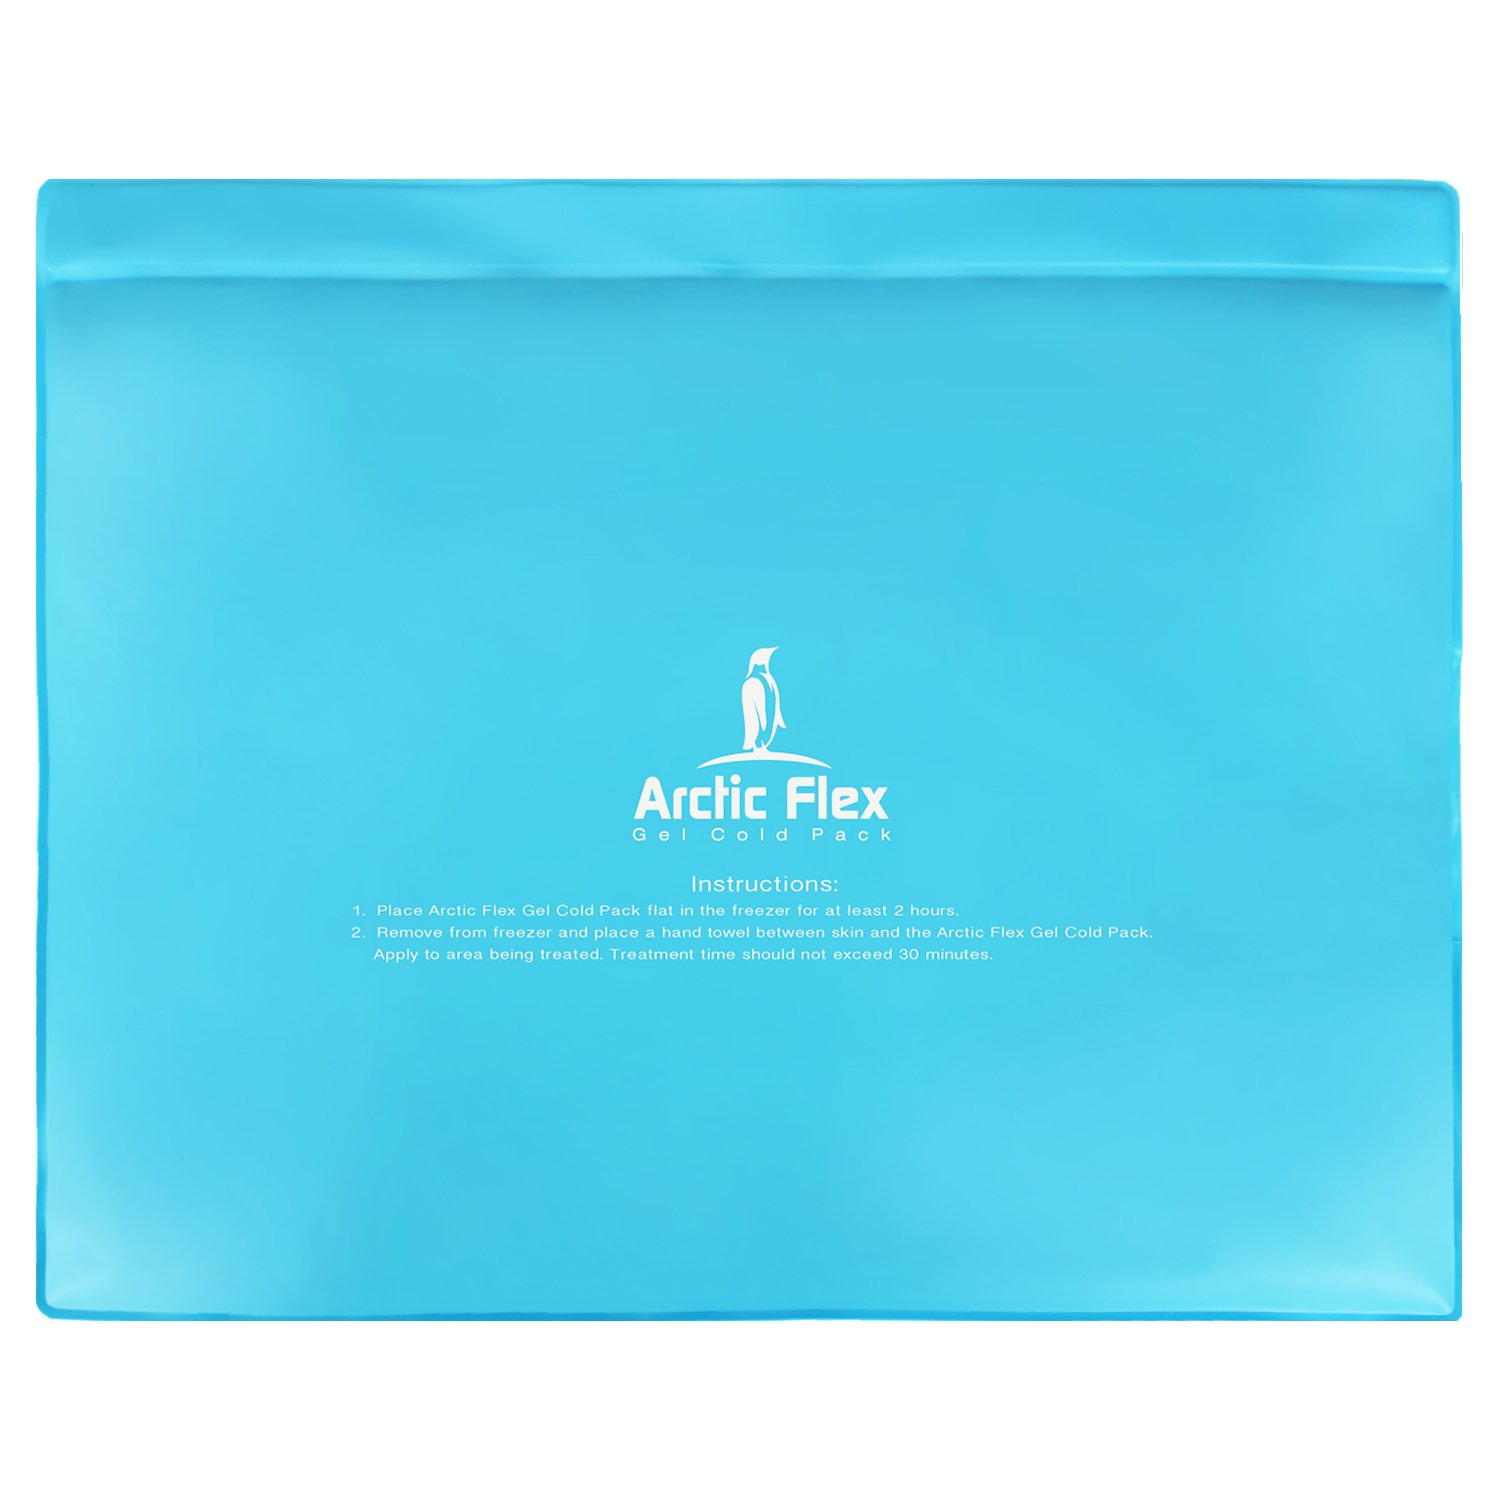 Arctic Flex Gel Ice Pack - Cold Therapy Ice Bag - Reusable Medical Freezer Pad - Hot/Heated Compress Wrap for Knee, Shoulder, Back and Ankle - Flexible, Soft & Instant (11'' x 14'') by Arctic Flex (Image #1)